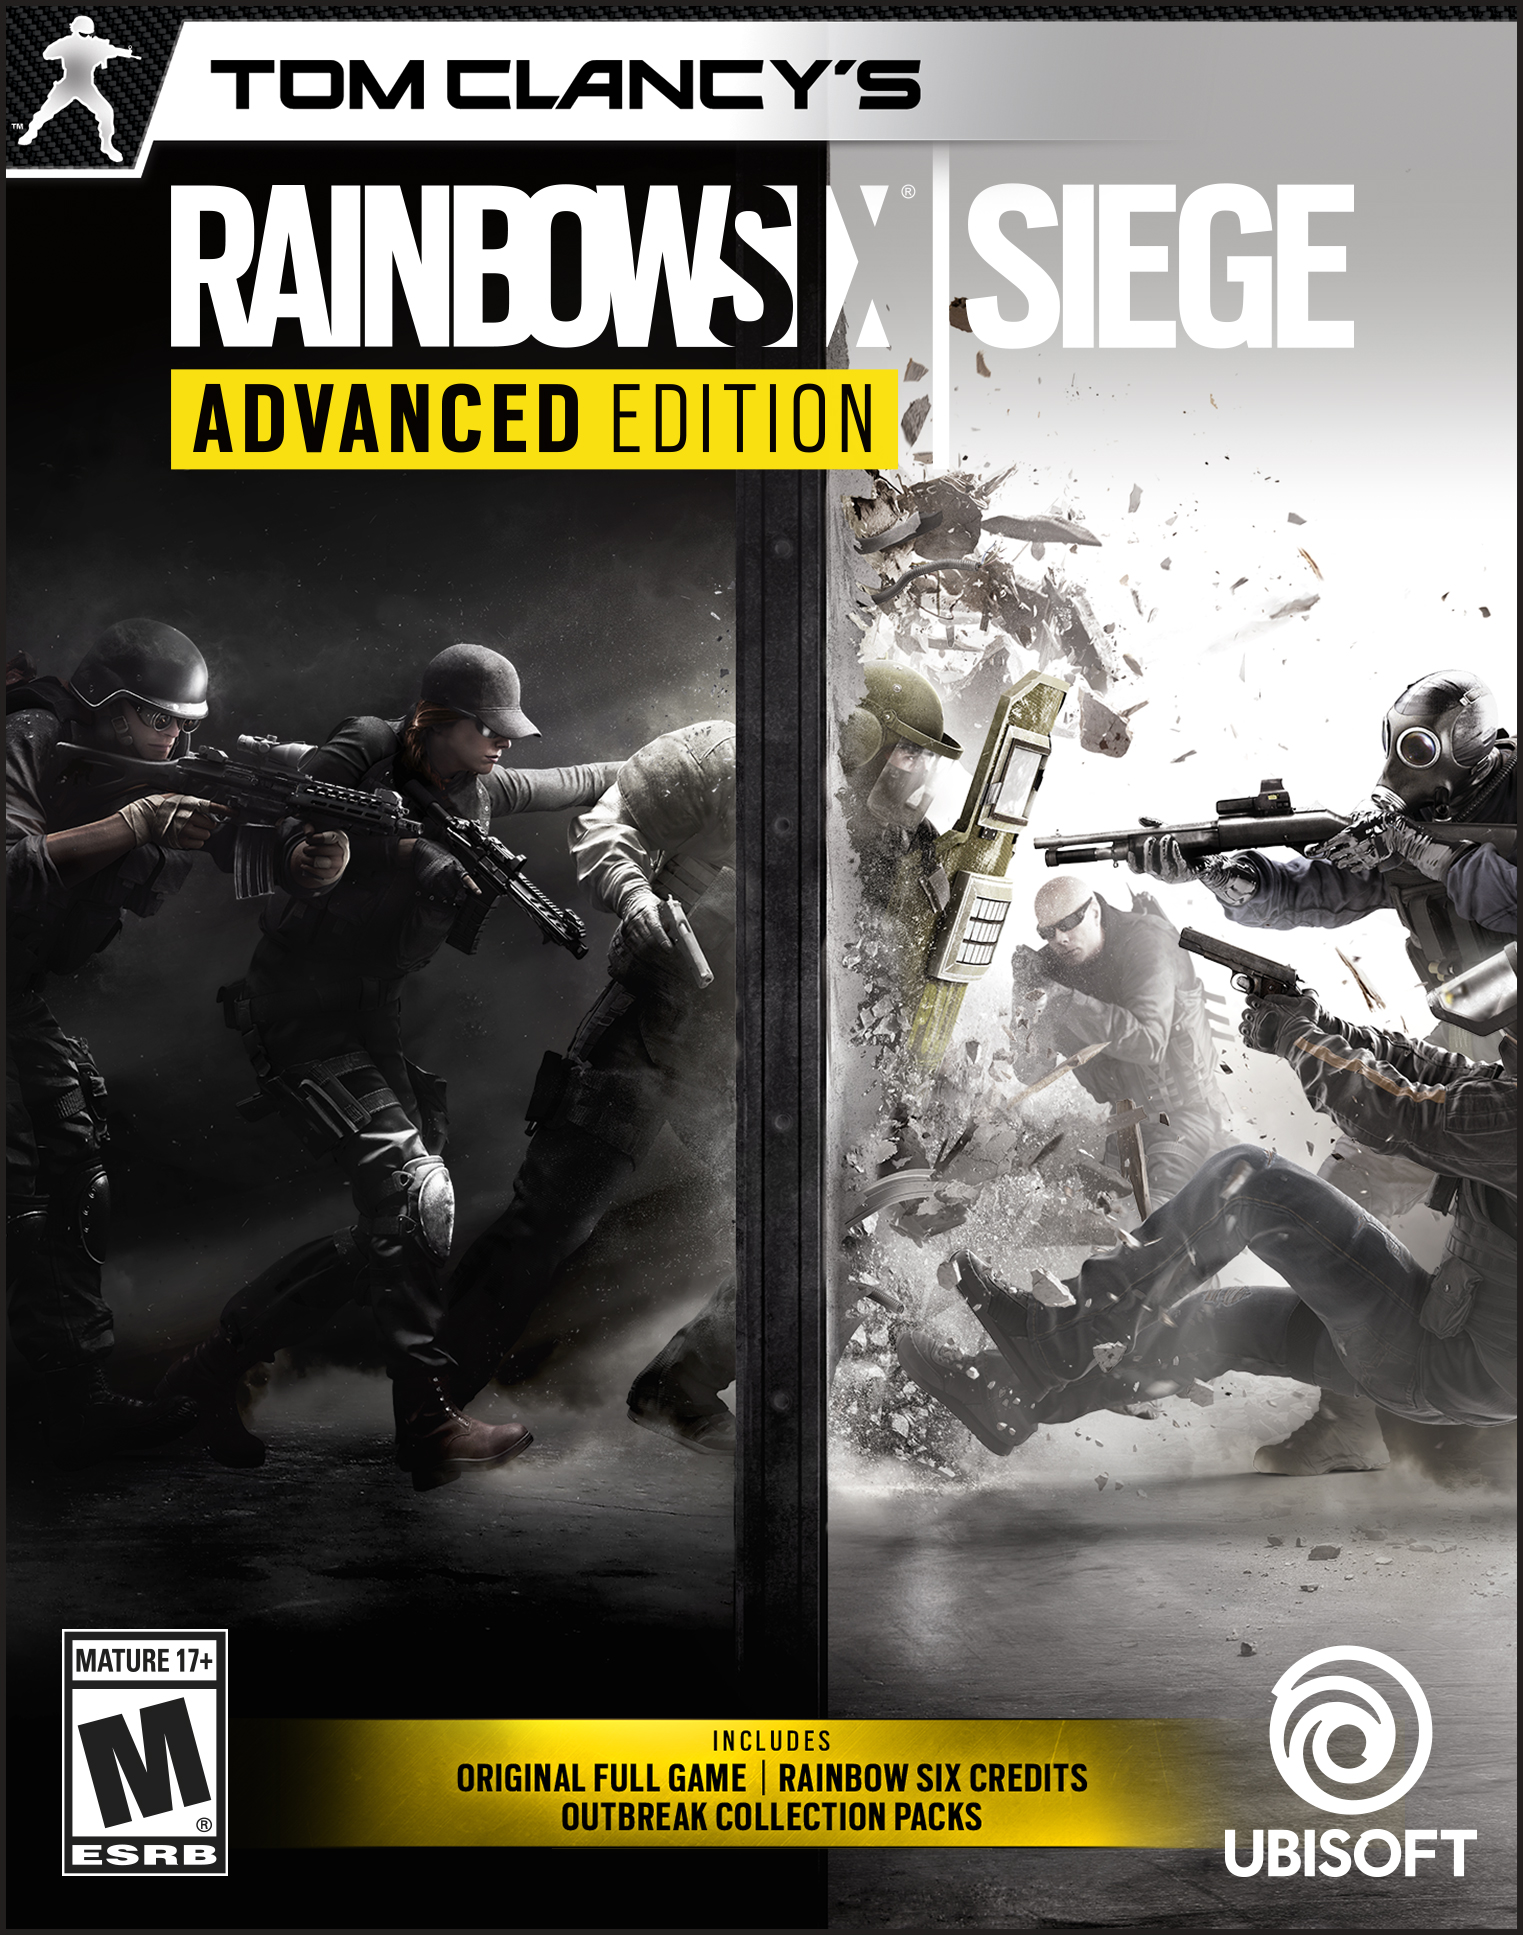 Tom Clancy's Rainbow Six Siege - Advanced Edition [Online Game Code] by Ubisoft